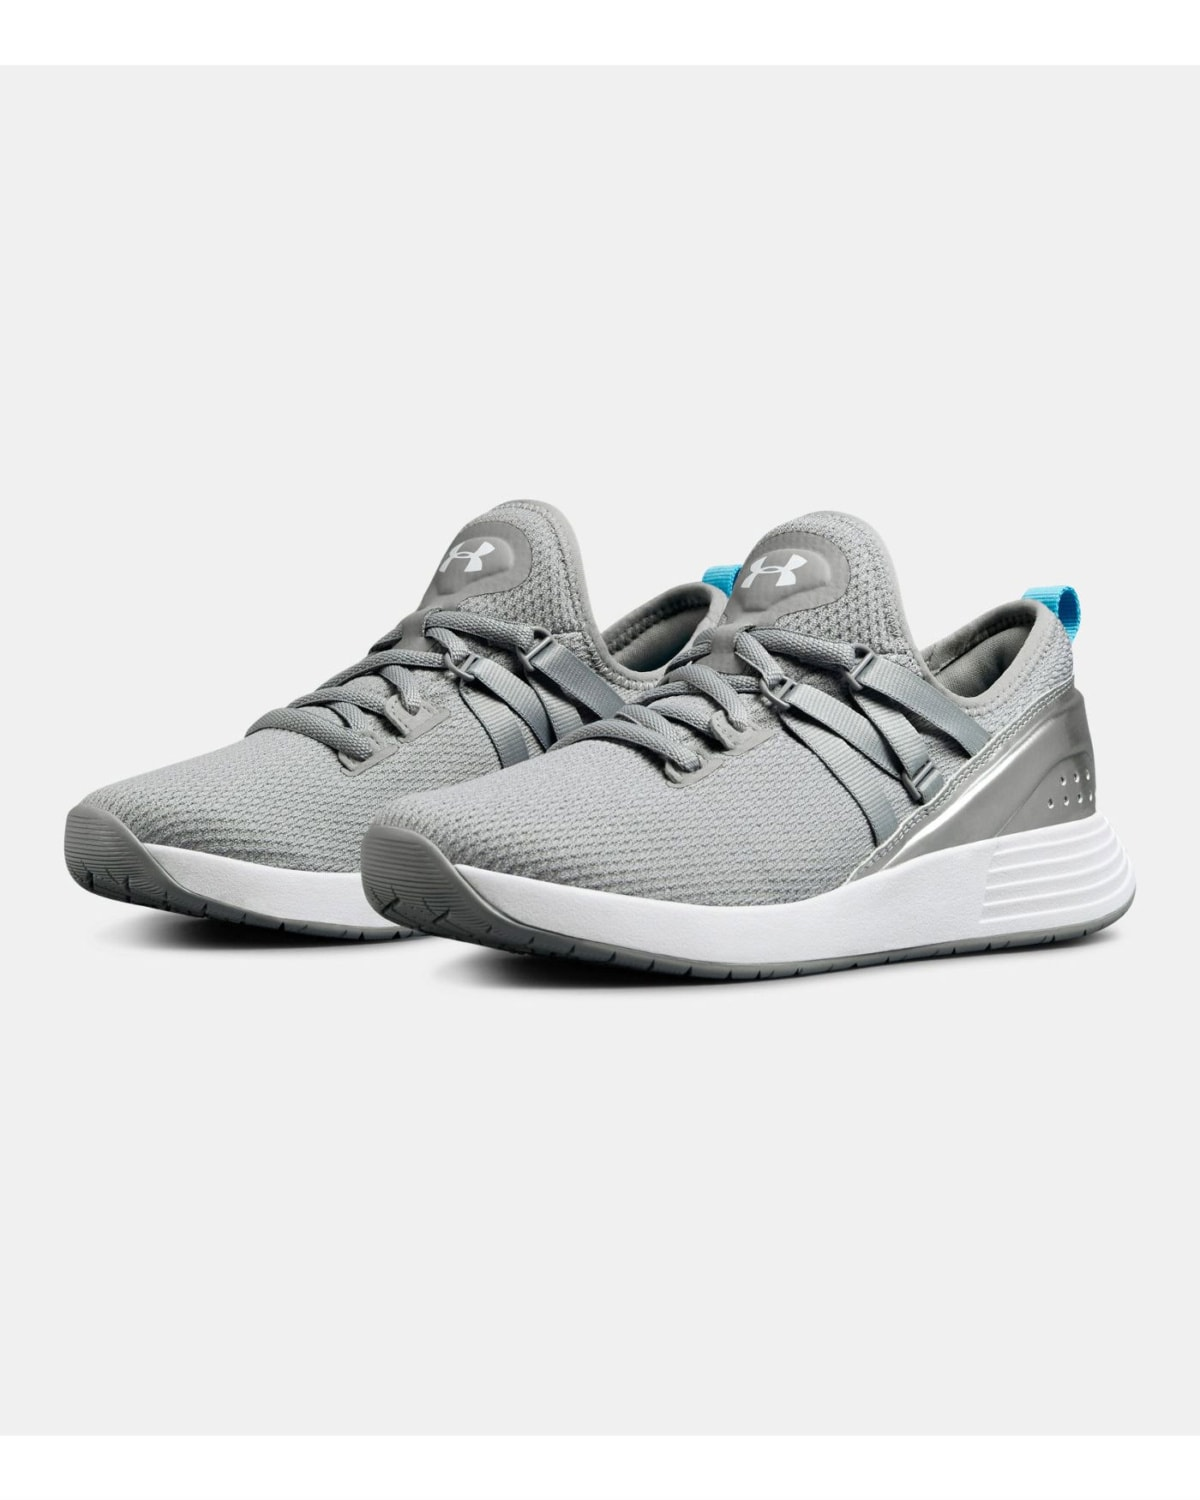 ua_shoes_grey2